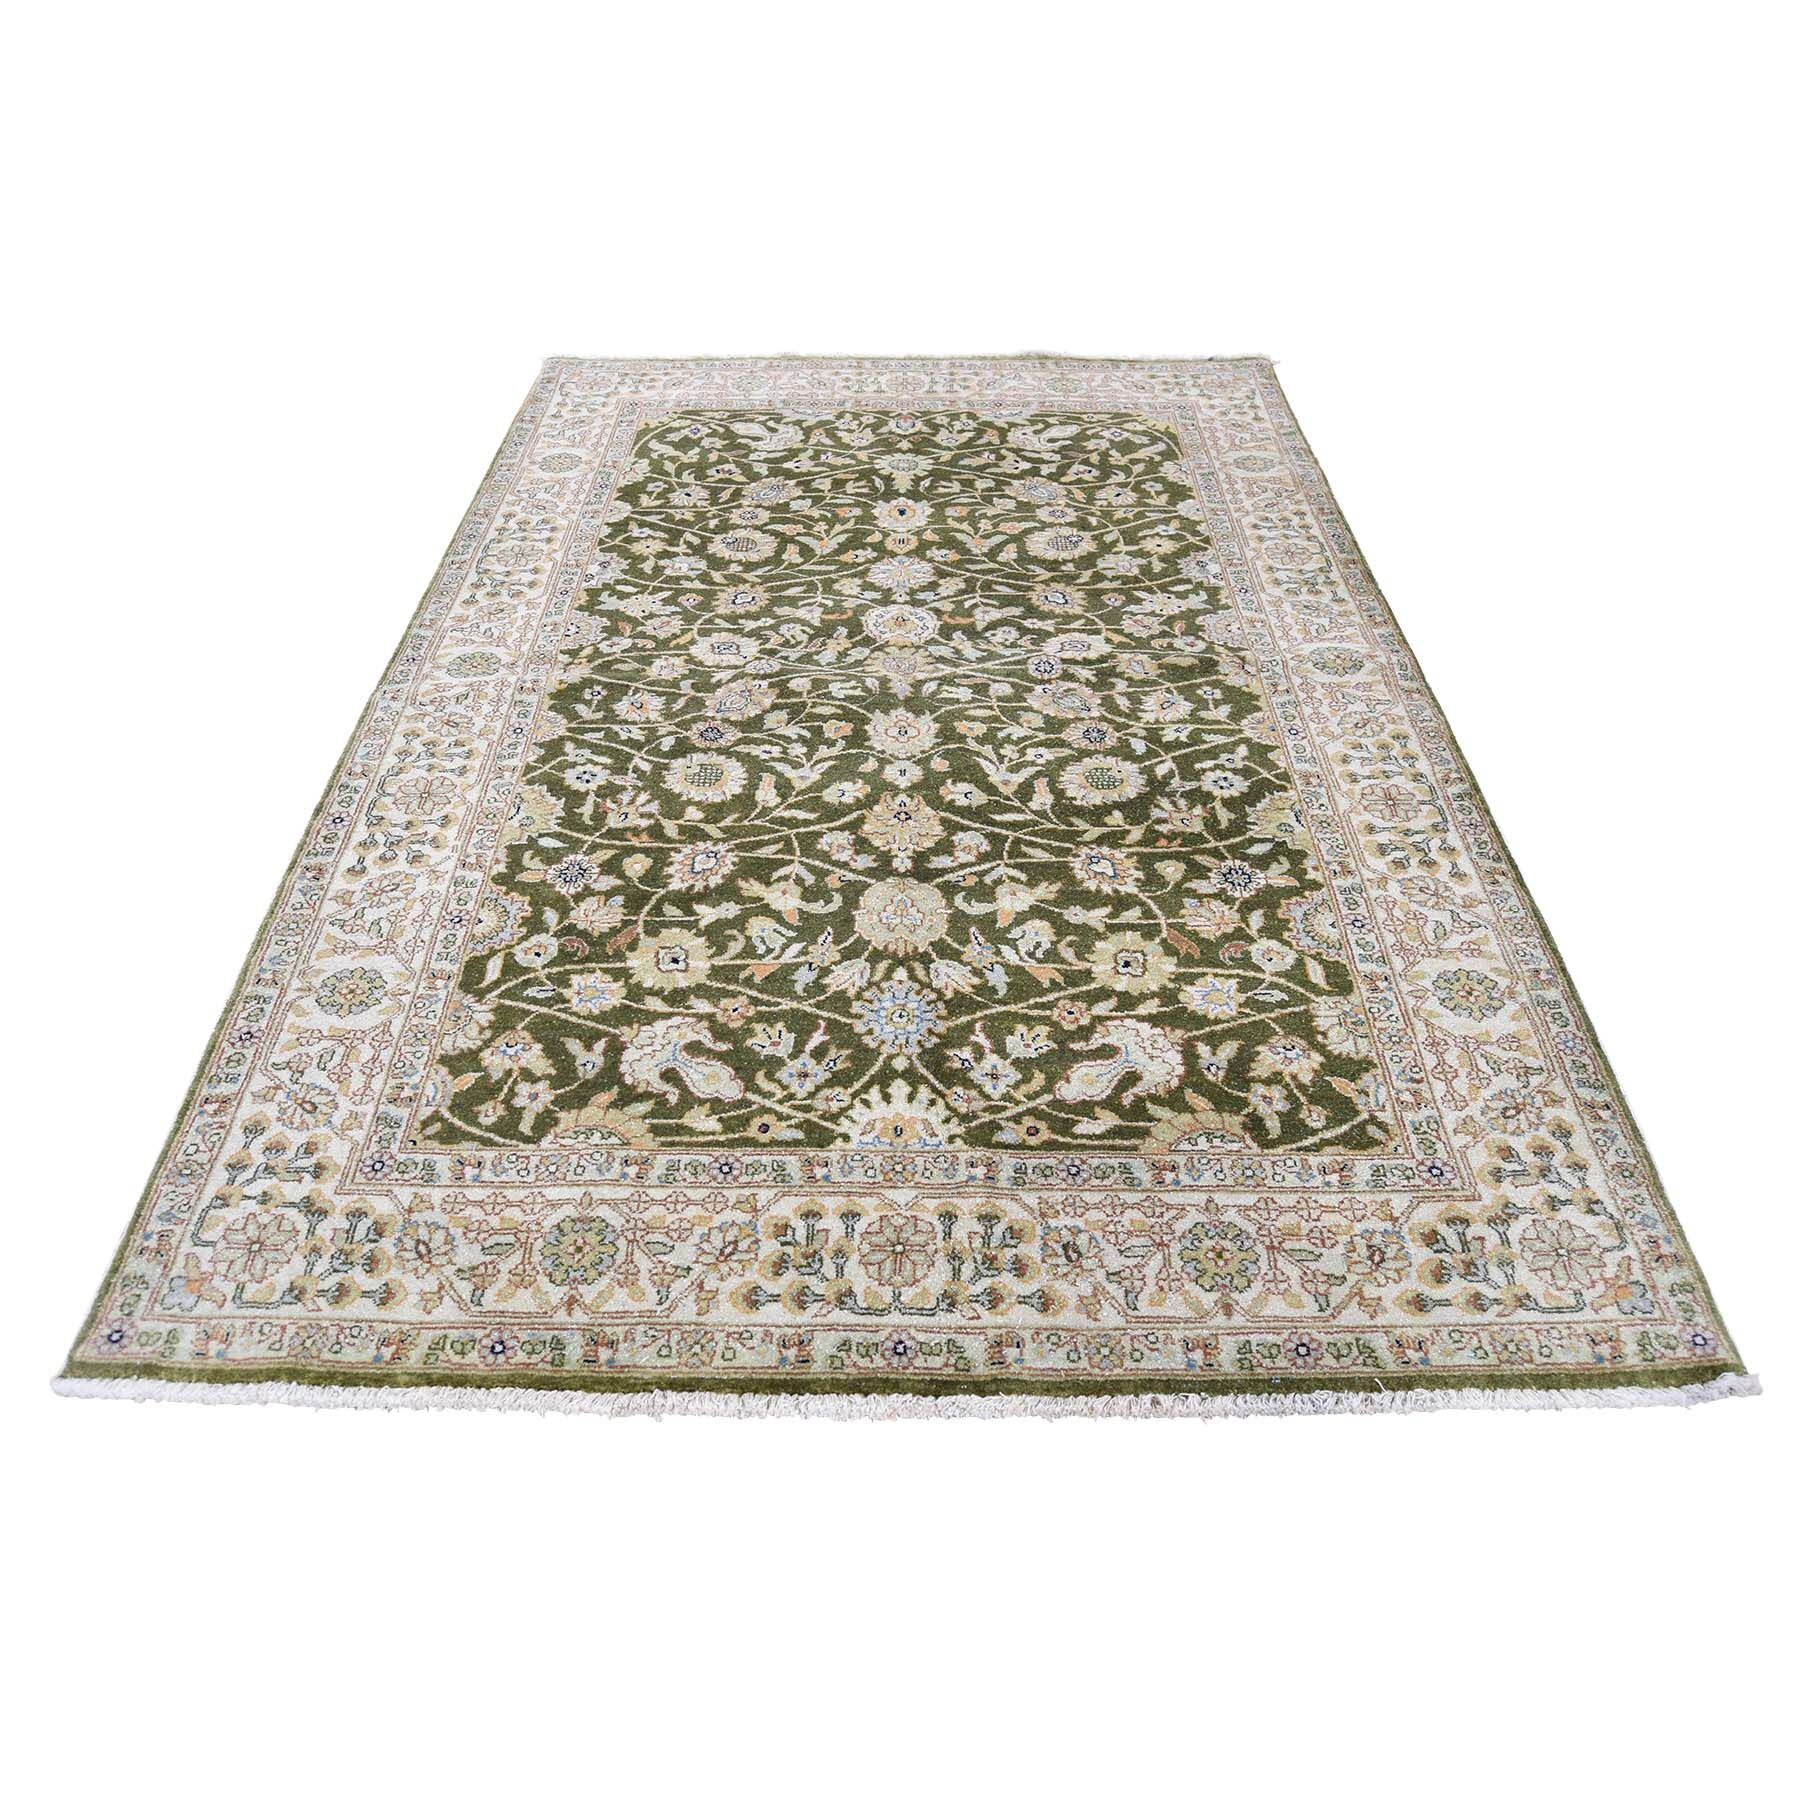 One-of-a-Kind Gossard Pak Persian 16/16 Quality Oriental Hand-Knotted Green Area Rug